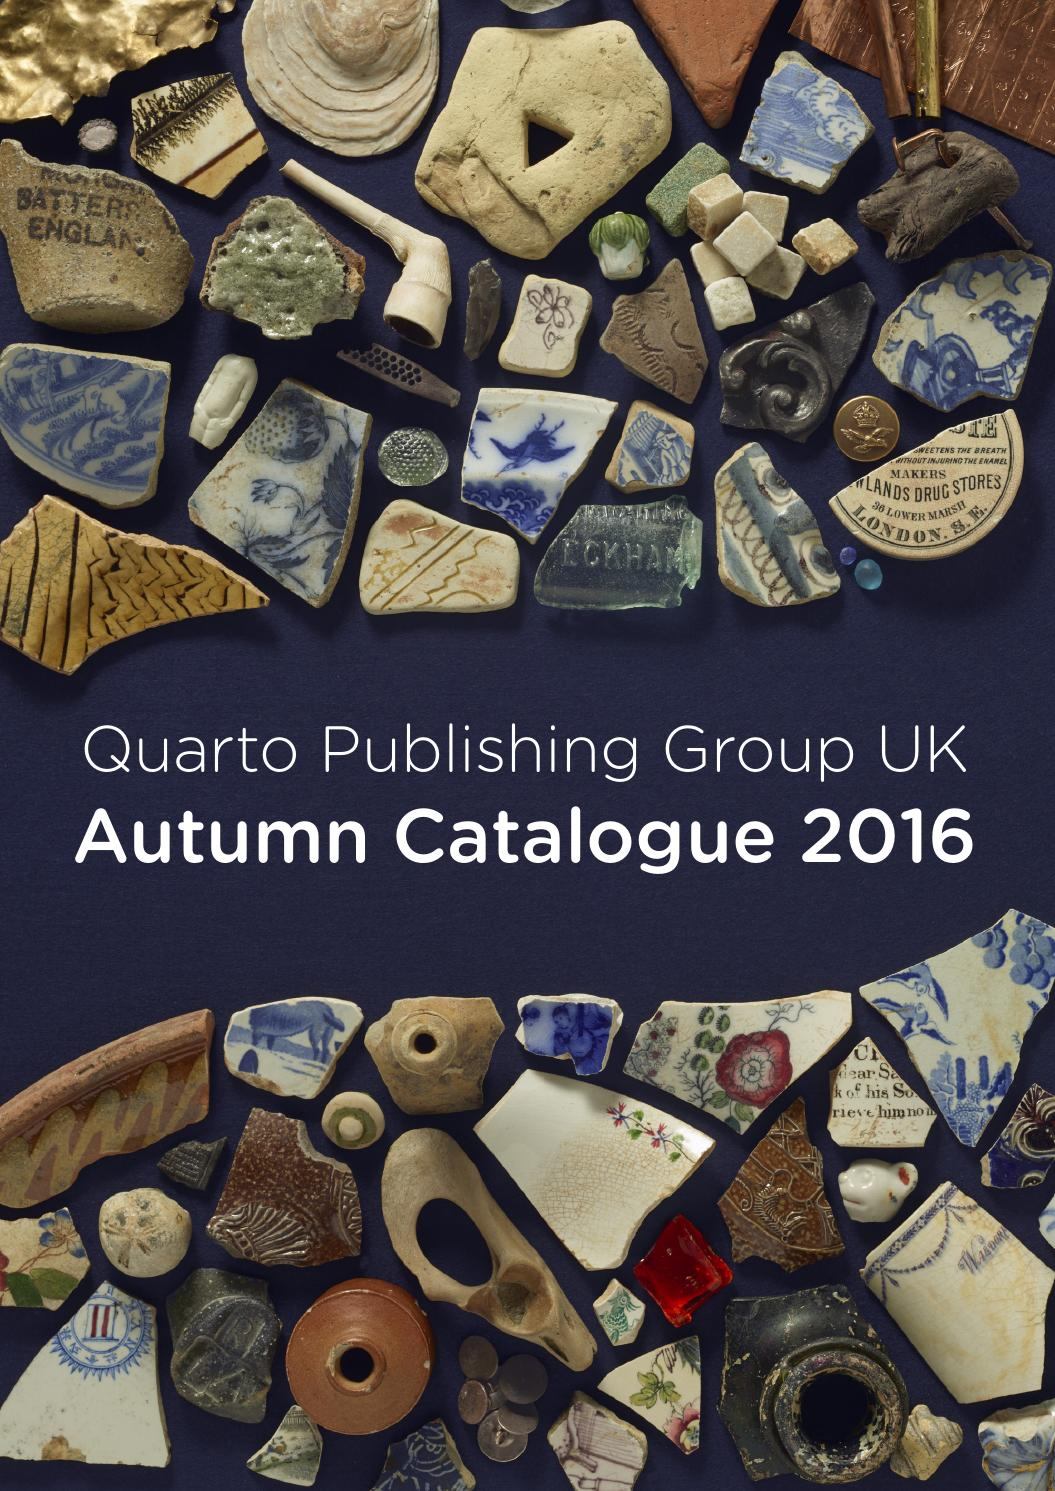 Quarto Publishing Group UK - Autumn 2016 by QPGUK4 - issuu c52a724ea3b